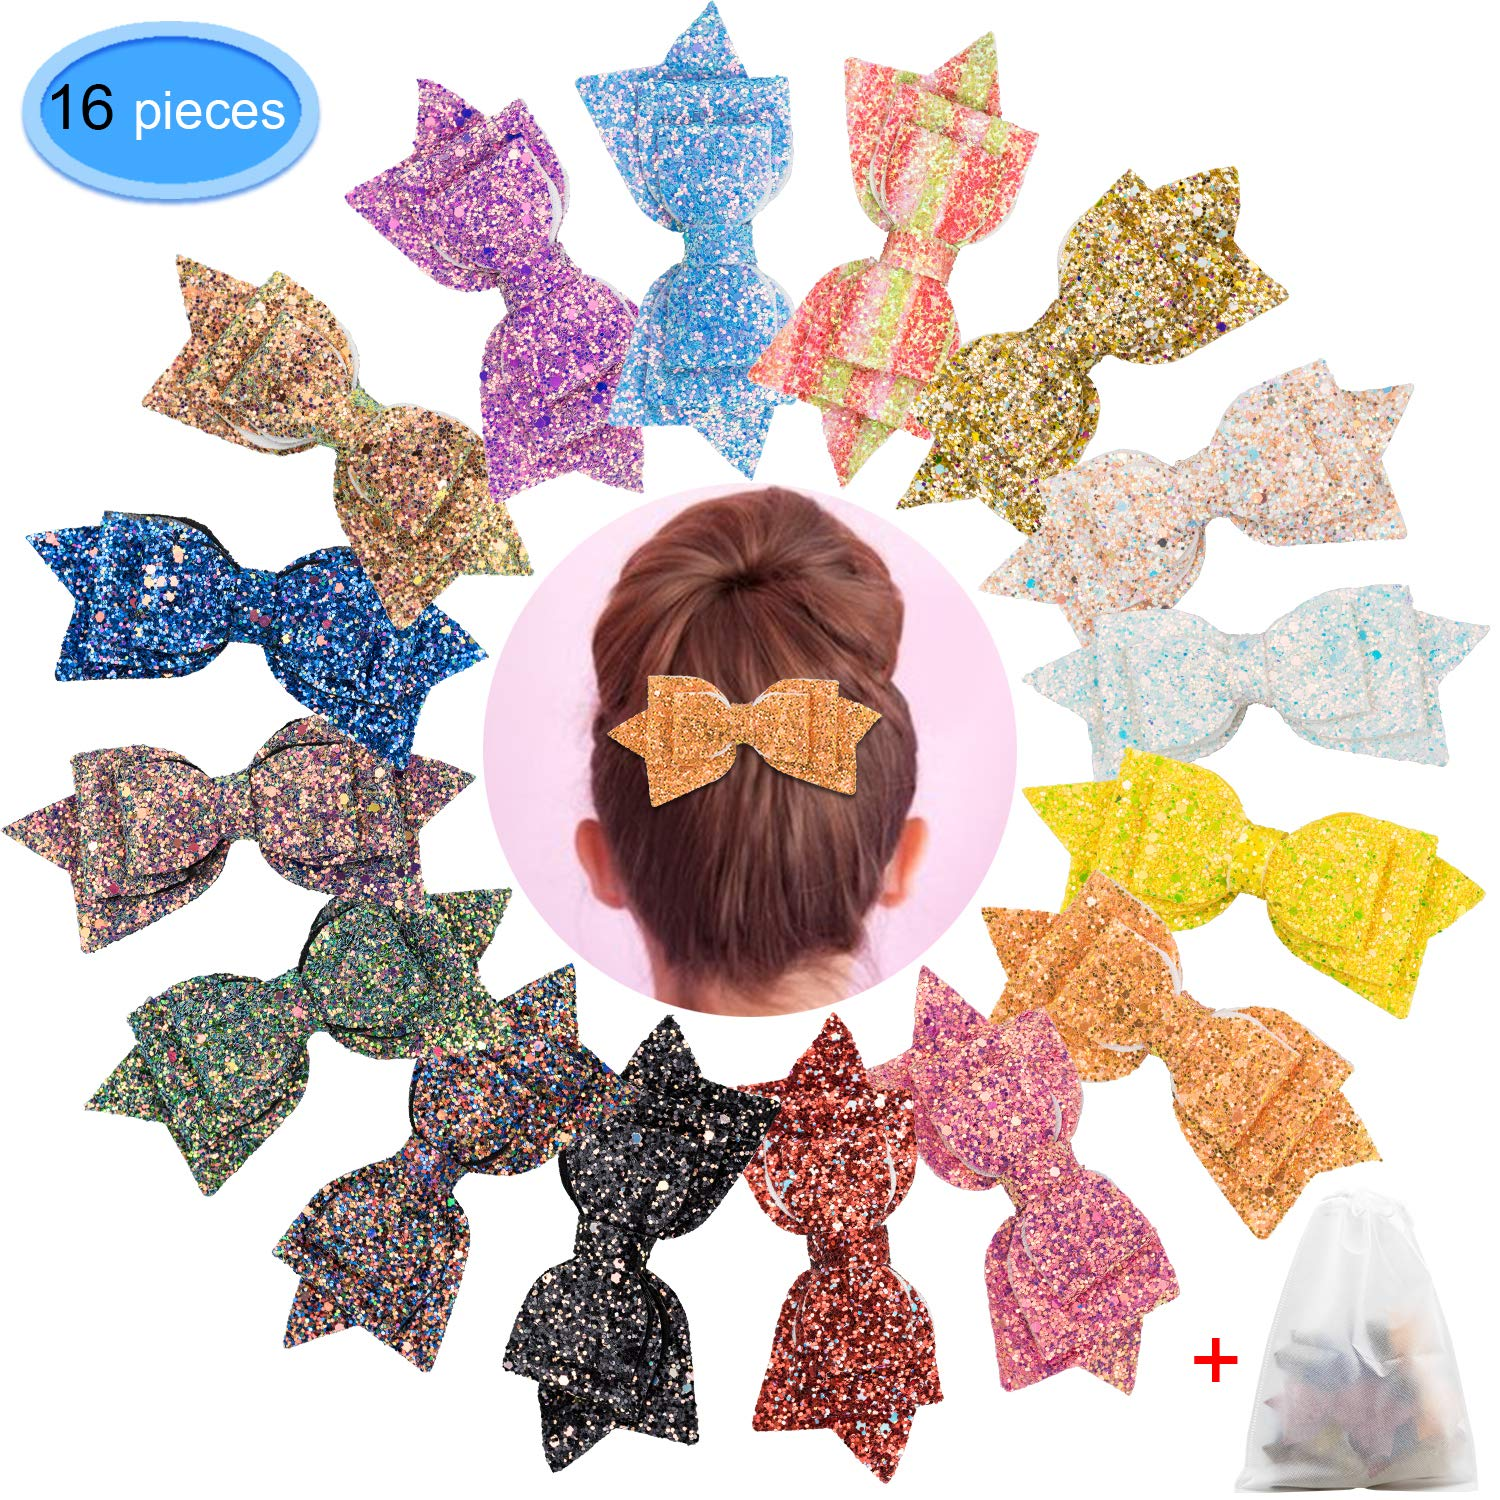 Glitter Hair Bows 16 Pieces, EAONE 5 Inch Sparkle Hair Bow Clips Sequins Boutique Hair Accessories Clip For Girls Toddlers Teens Women, 16 Colors